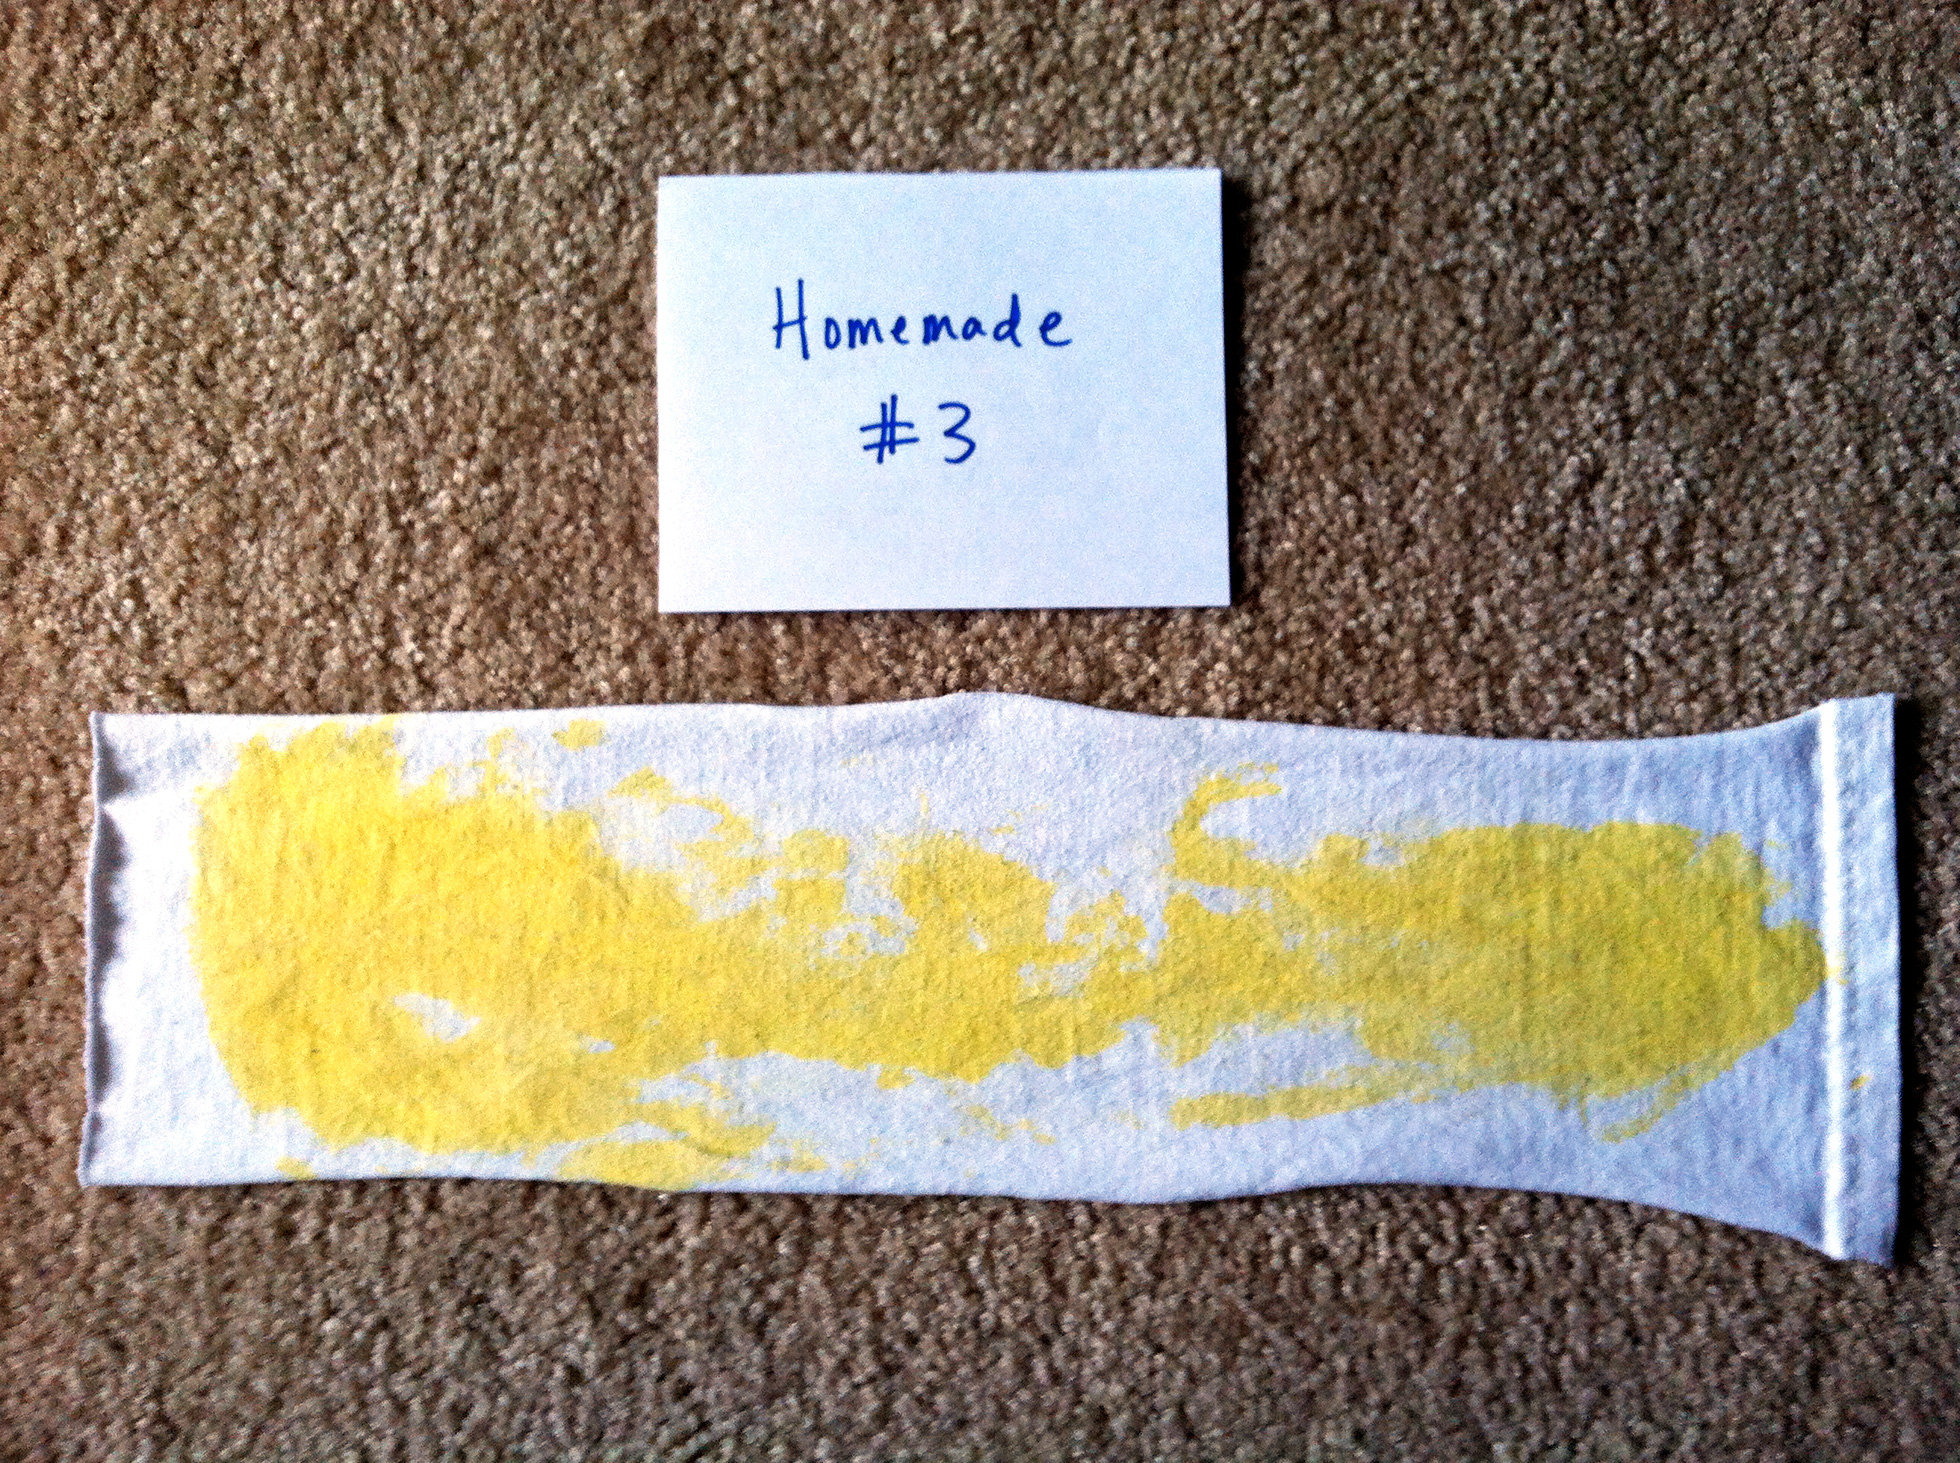 Test strip after washing with homemade detergent #3